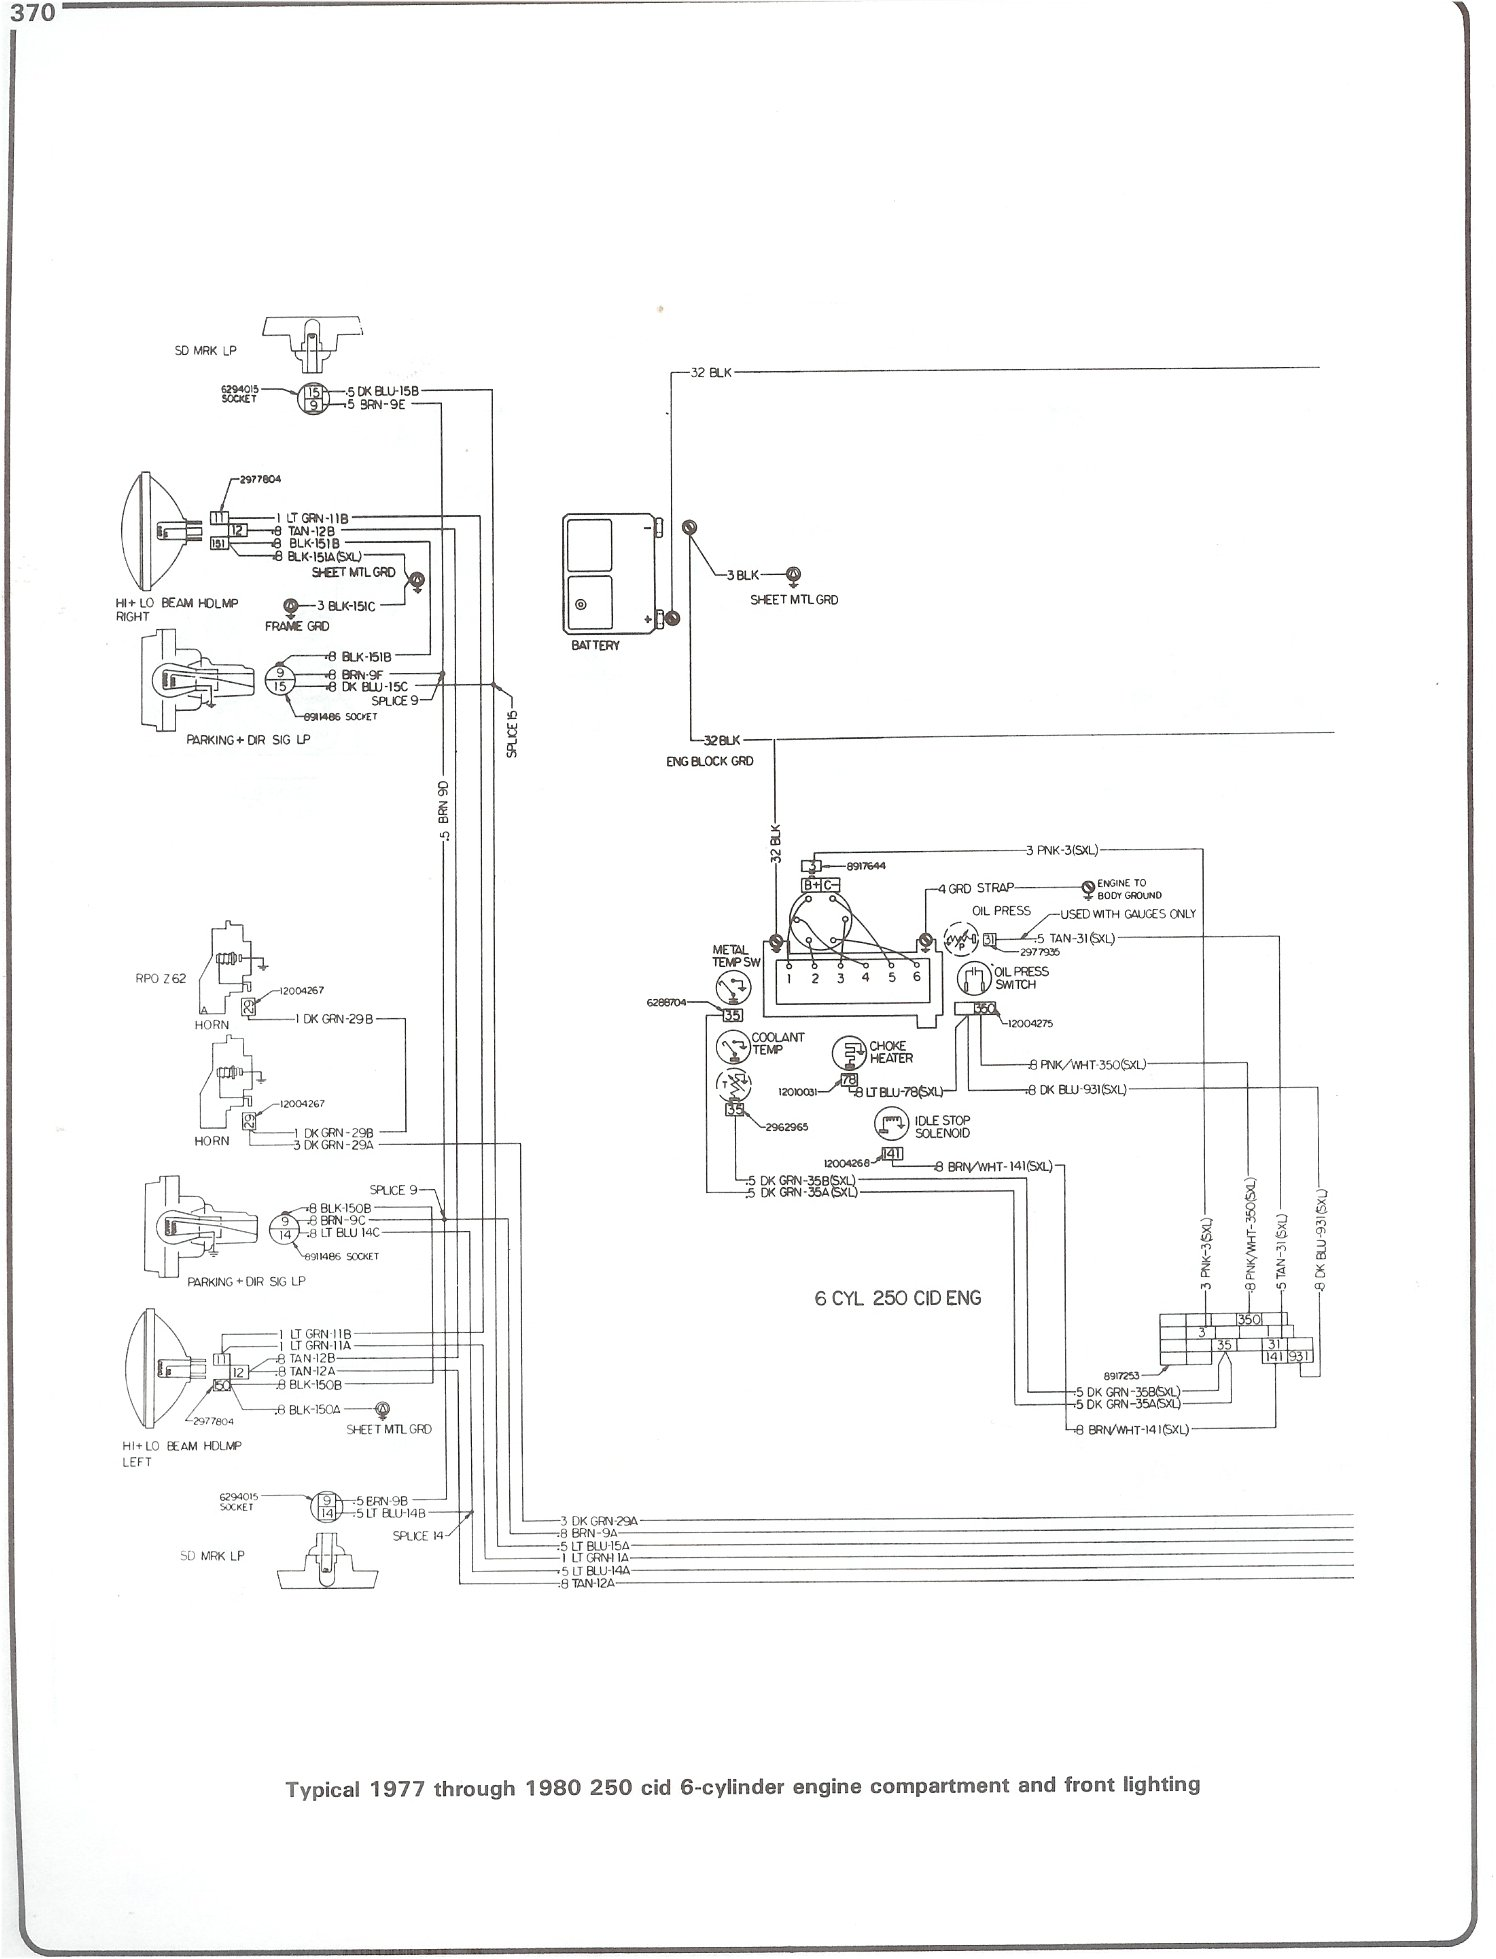 1983 Chevy Ignition Switch Wiring Diagram Automotive Diagrams Ford Msd Complete 73 87